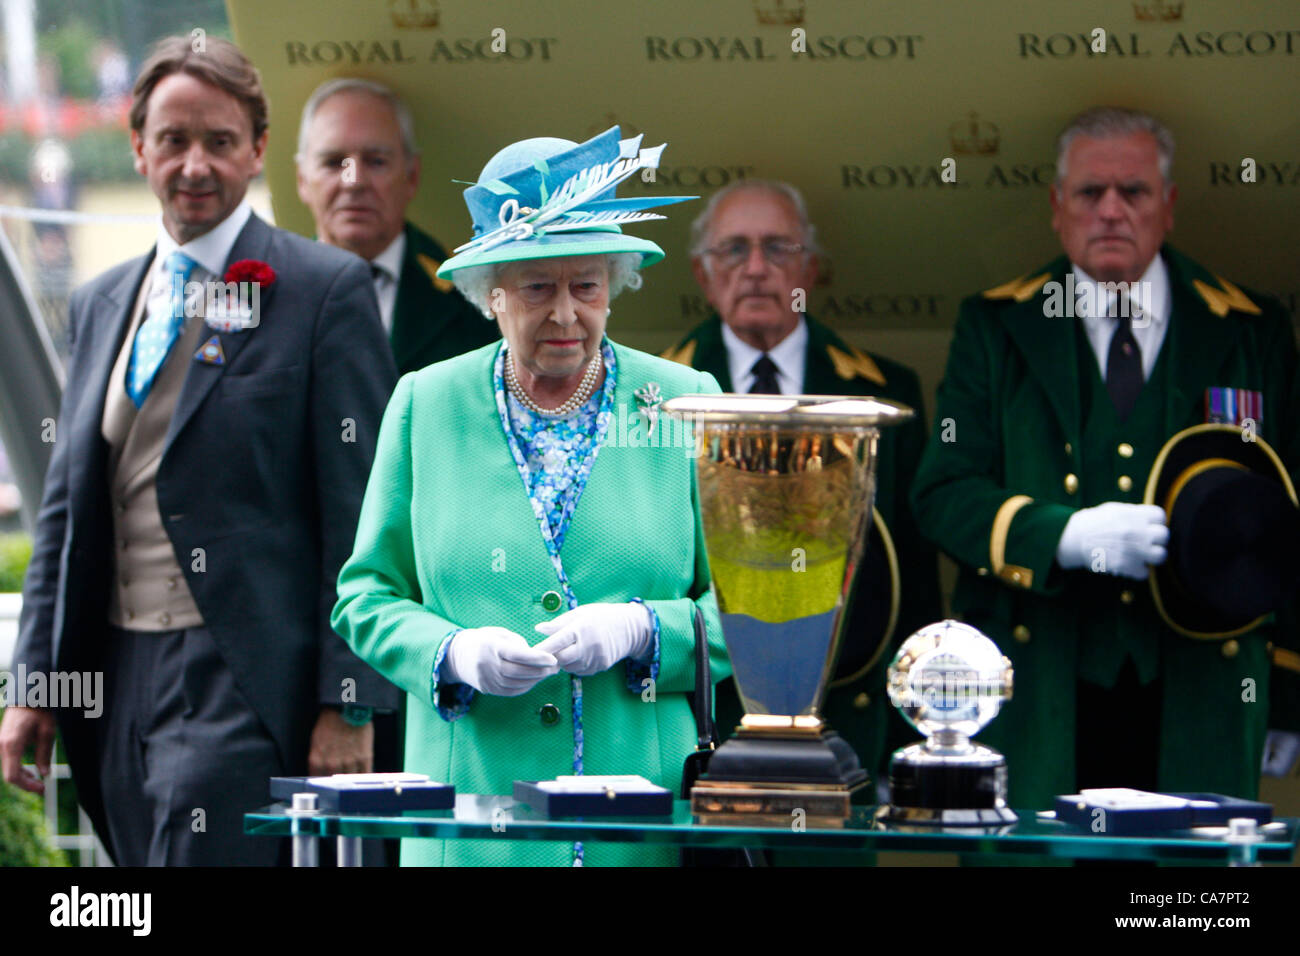 23.06.2012 Ascot, Windsor, ENGLAND, UK:  Queen Elizabeth II presents one of the Owners of Black Caviar with the - Stock Image